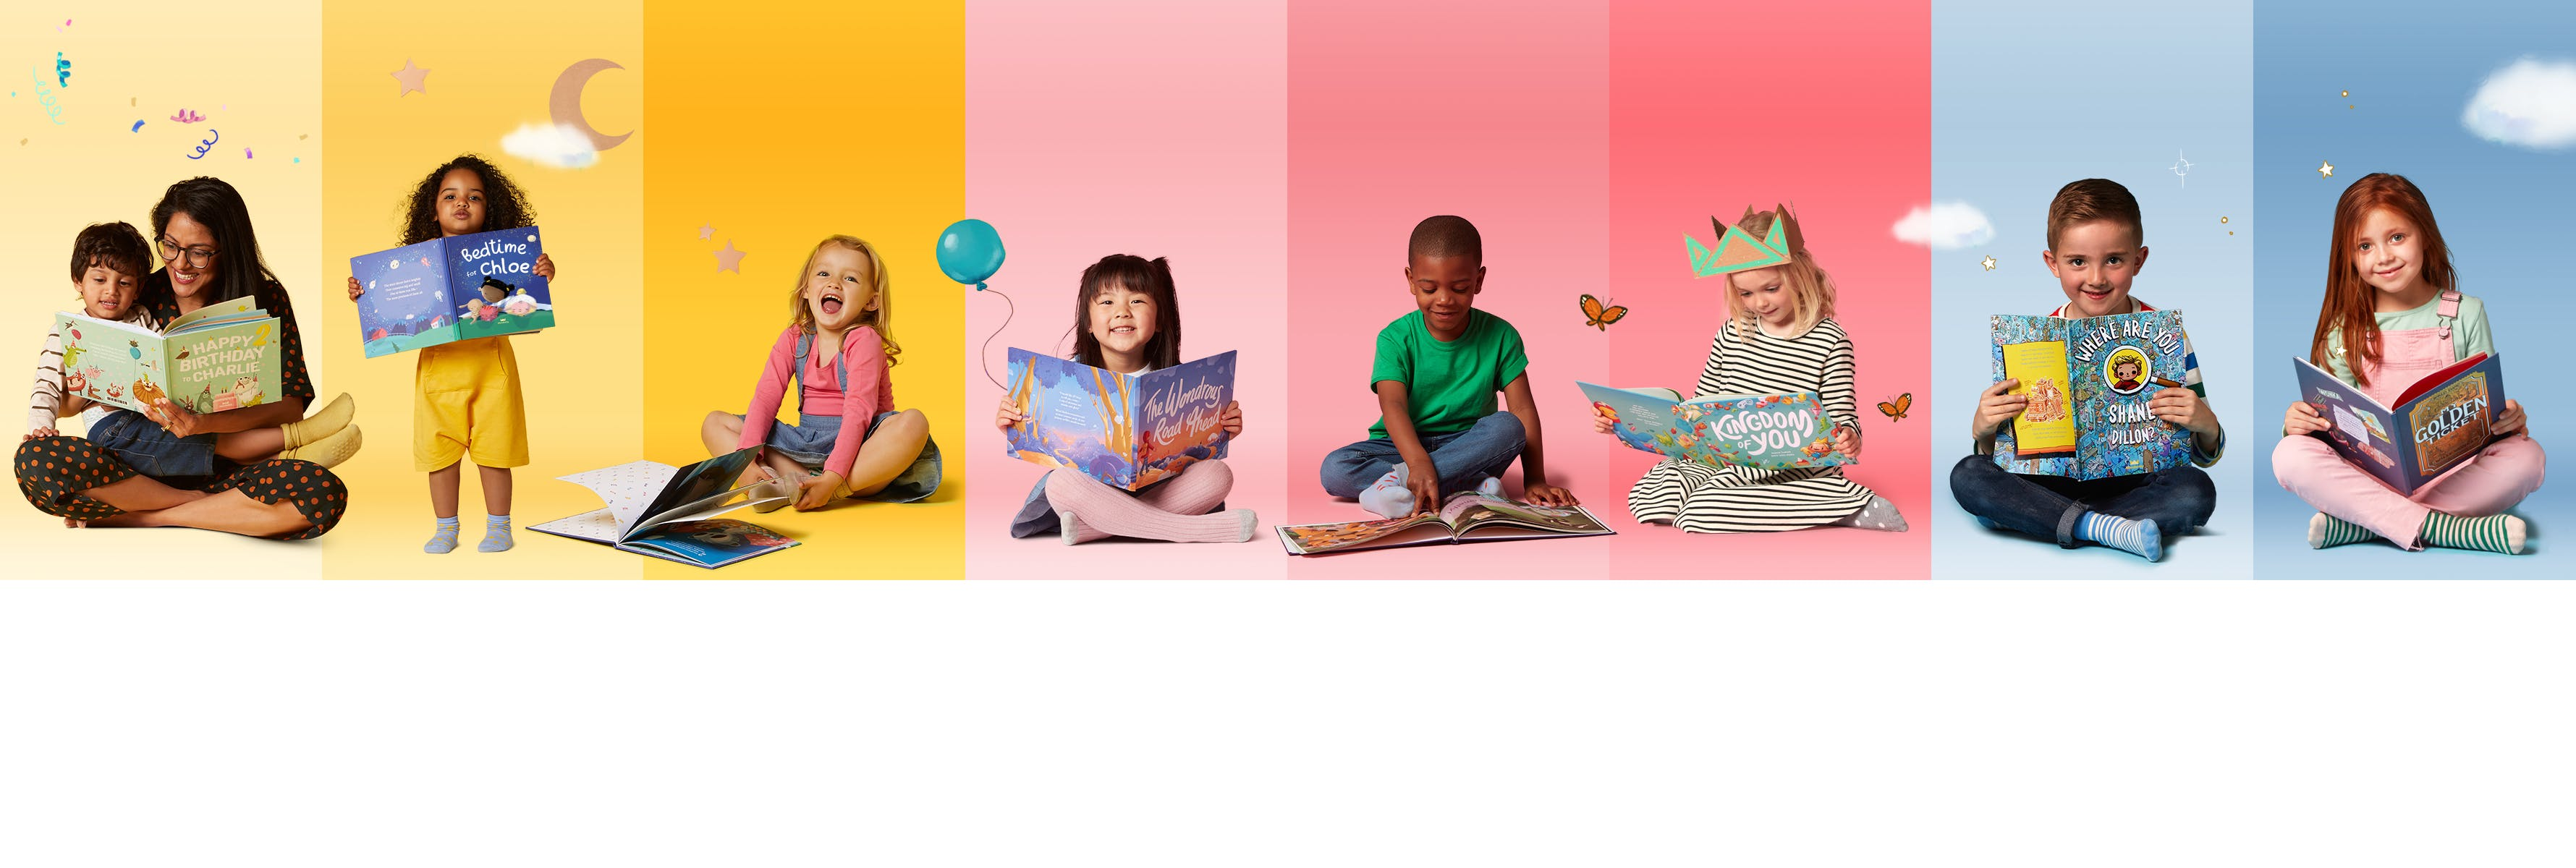 Multiple children reading Wonderbly books against a mutli-coloured background